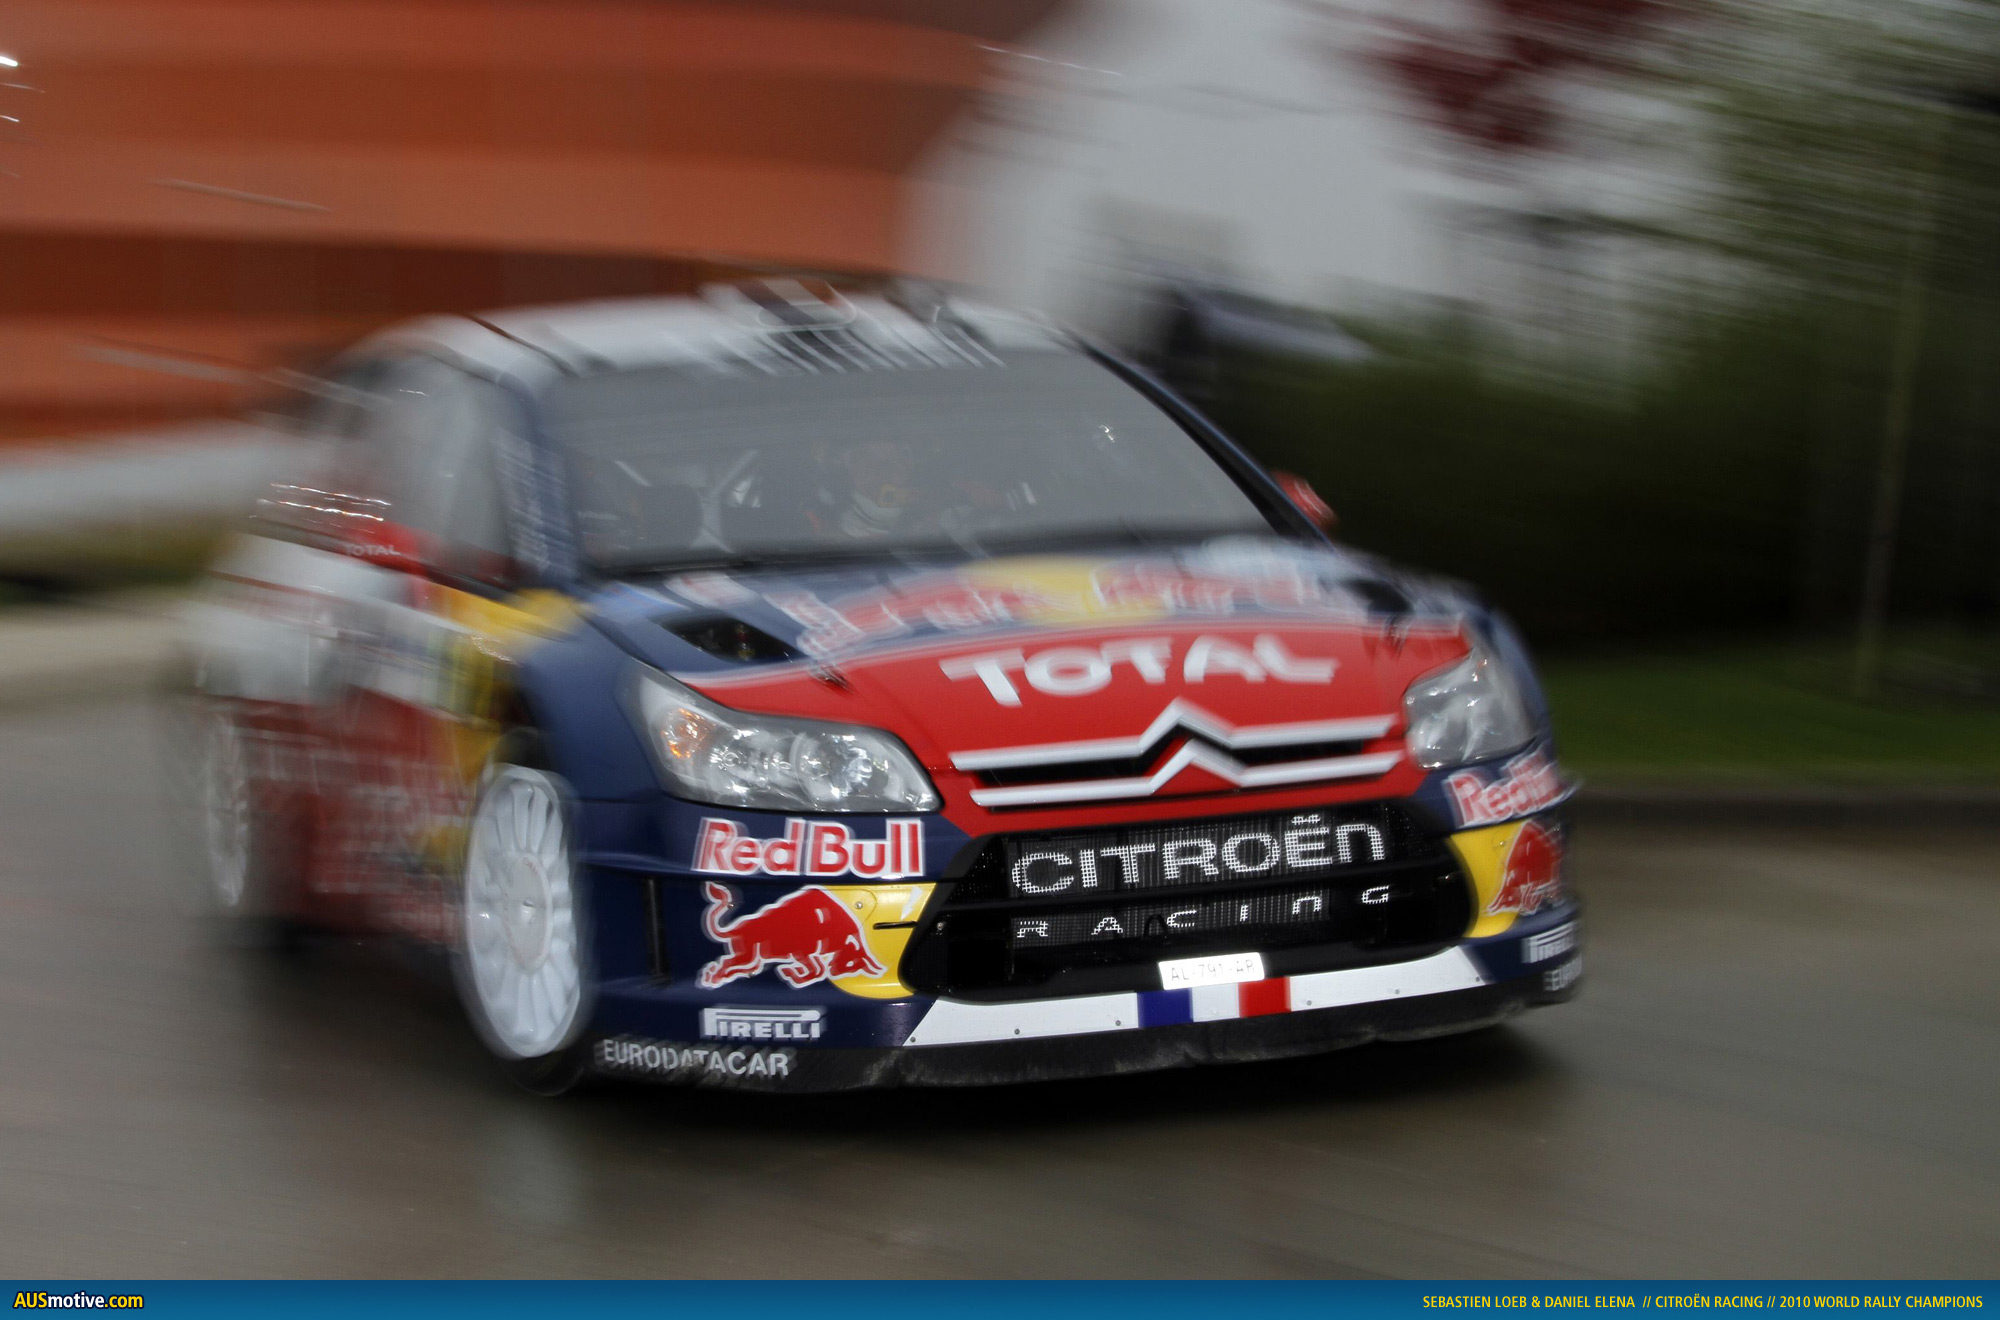 AUSmotive.com » Sebastien Loeb – World Rally Champion again in 2010!